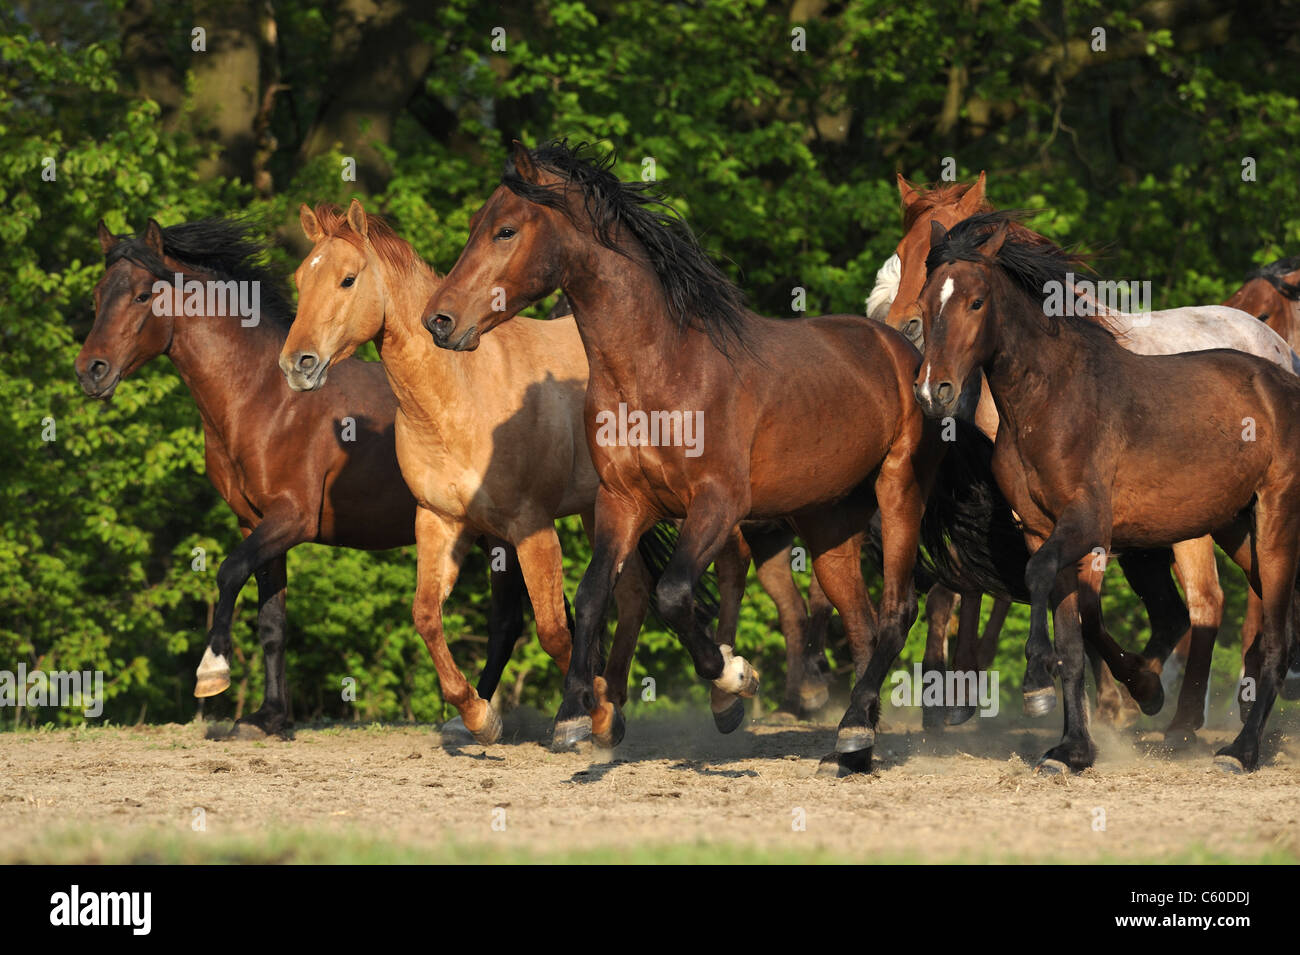 Mangalarga Marchador (Equus ferus caballus). Young stallions in a gallop in a sandy paddock. - Stock Image